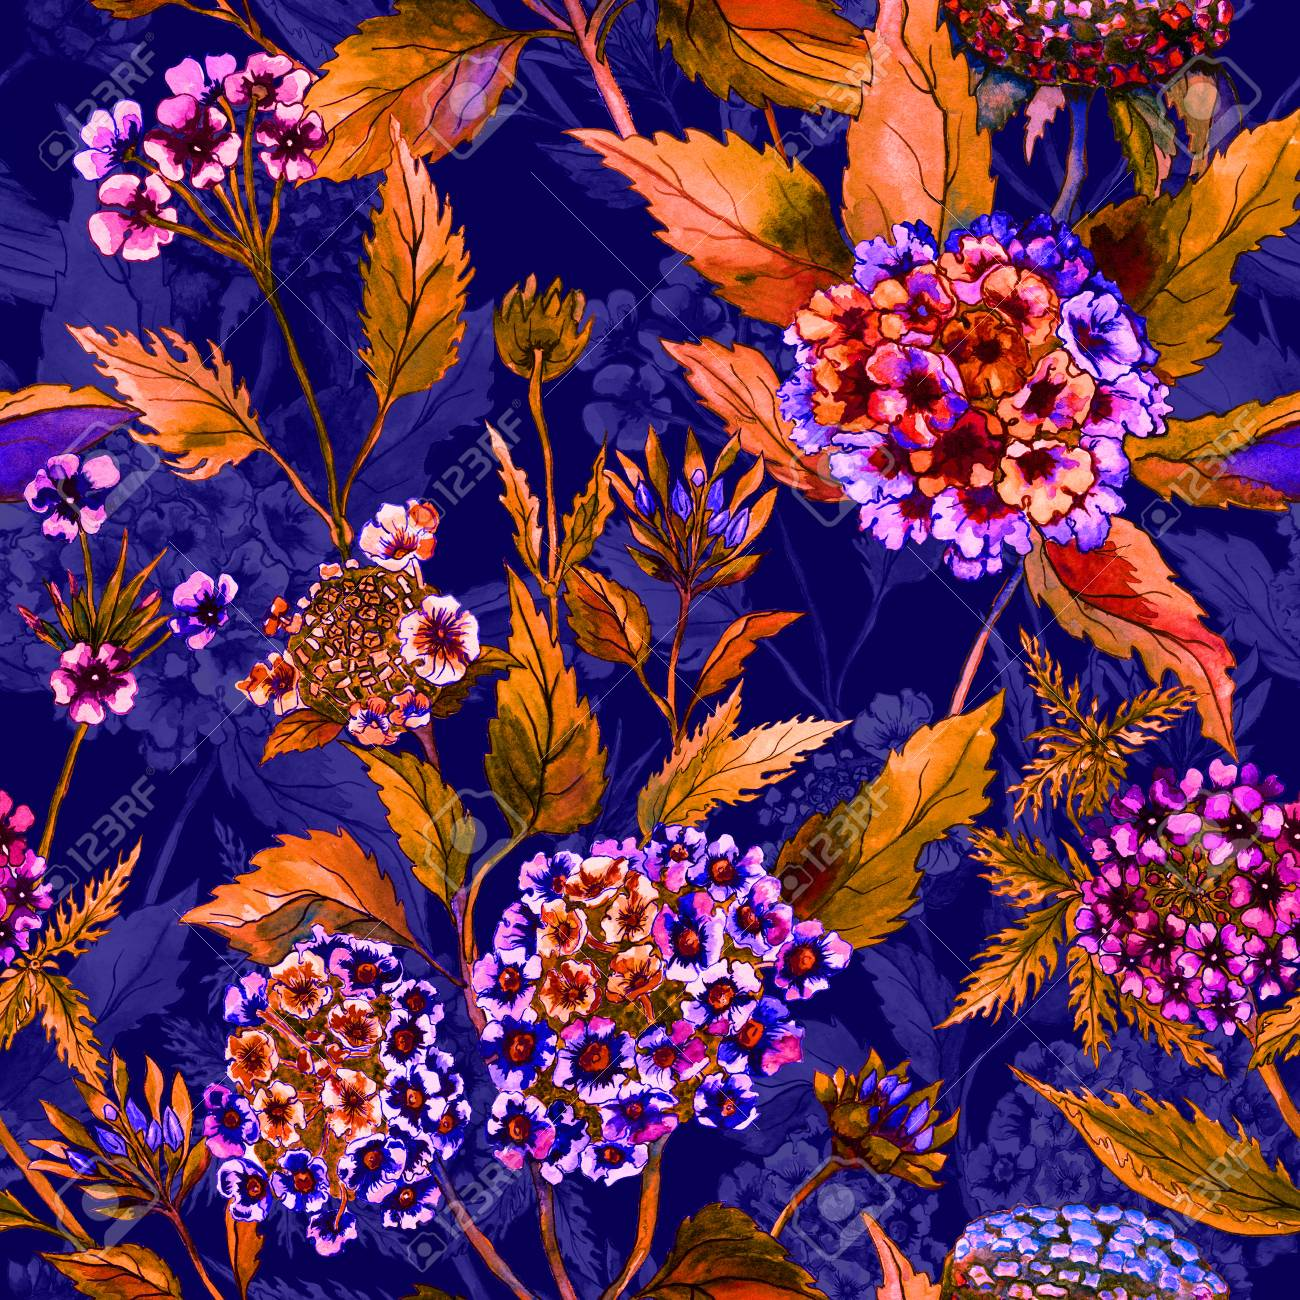 Beautiful Bright Flowers With Orange Leaves On Dark Blue Background Seamless Floral Pattern Watercolor Painting Hand Drawn Illustration Can Be Used As Design For Fabric Or Wallpaper Stock Photo Picture And Royalty